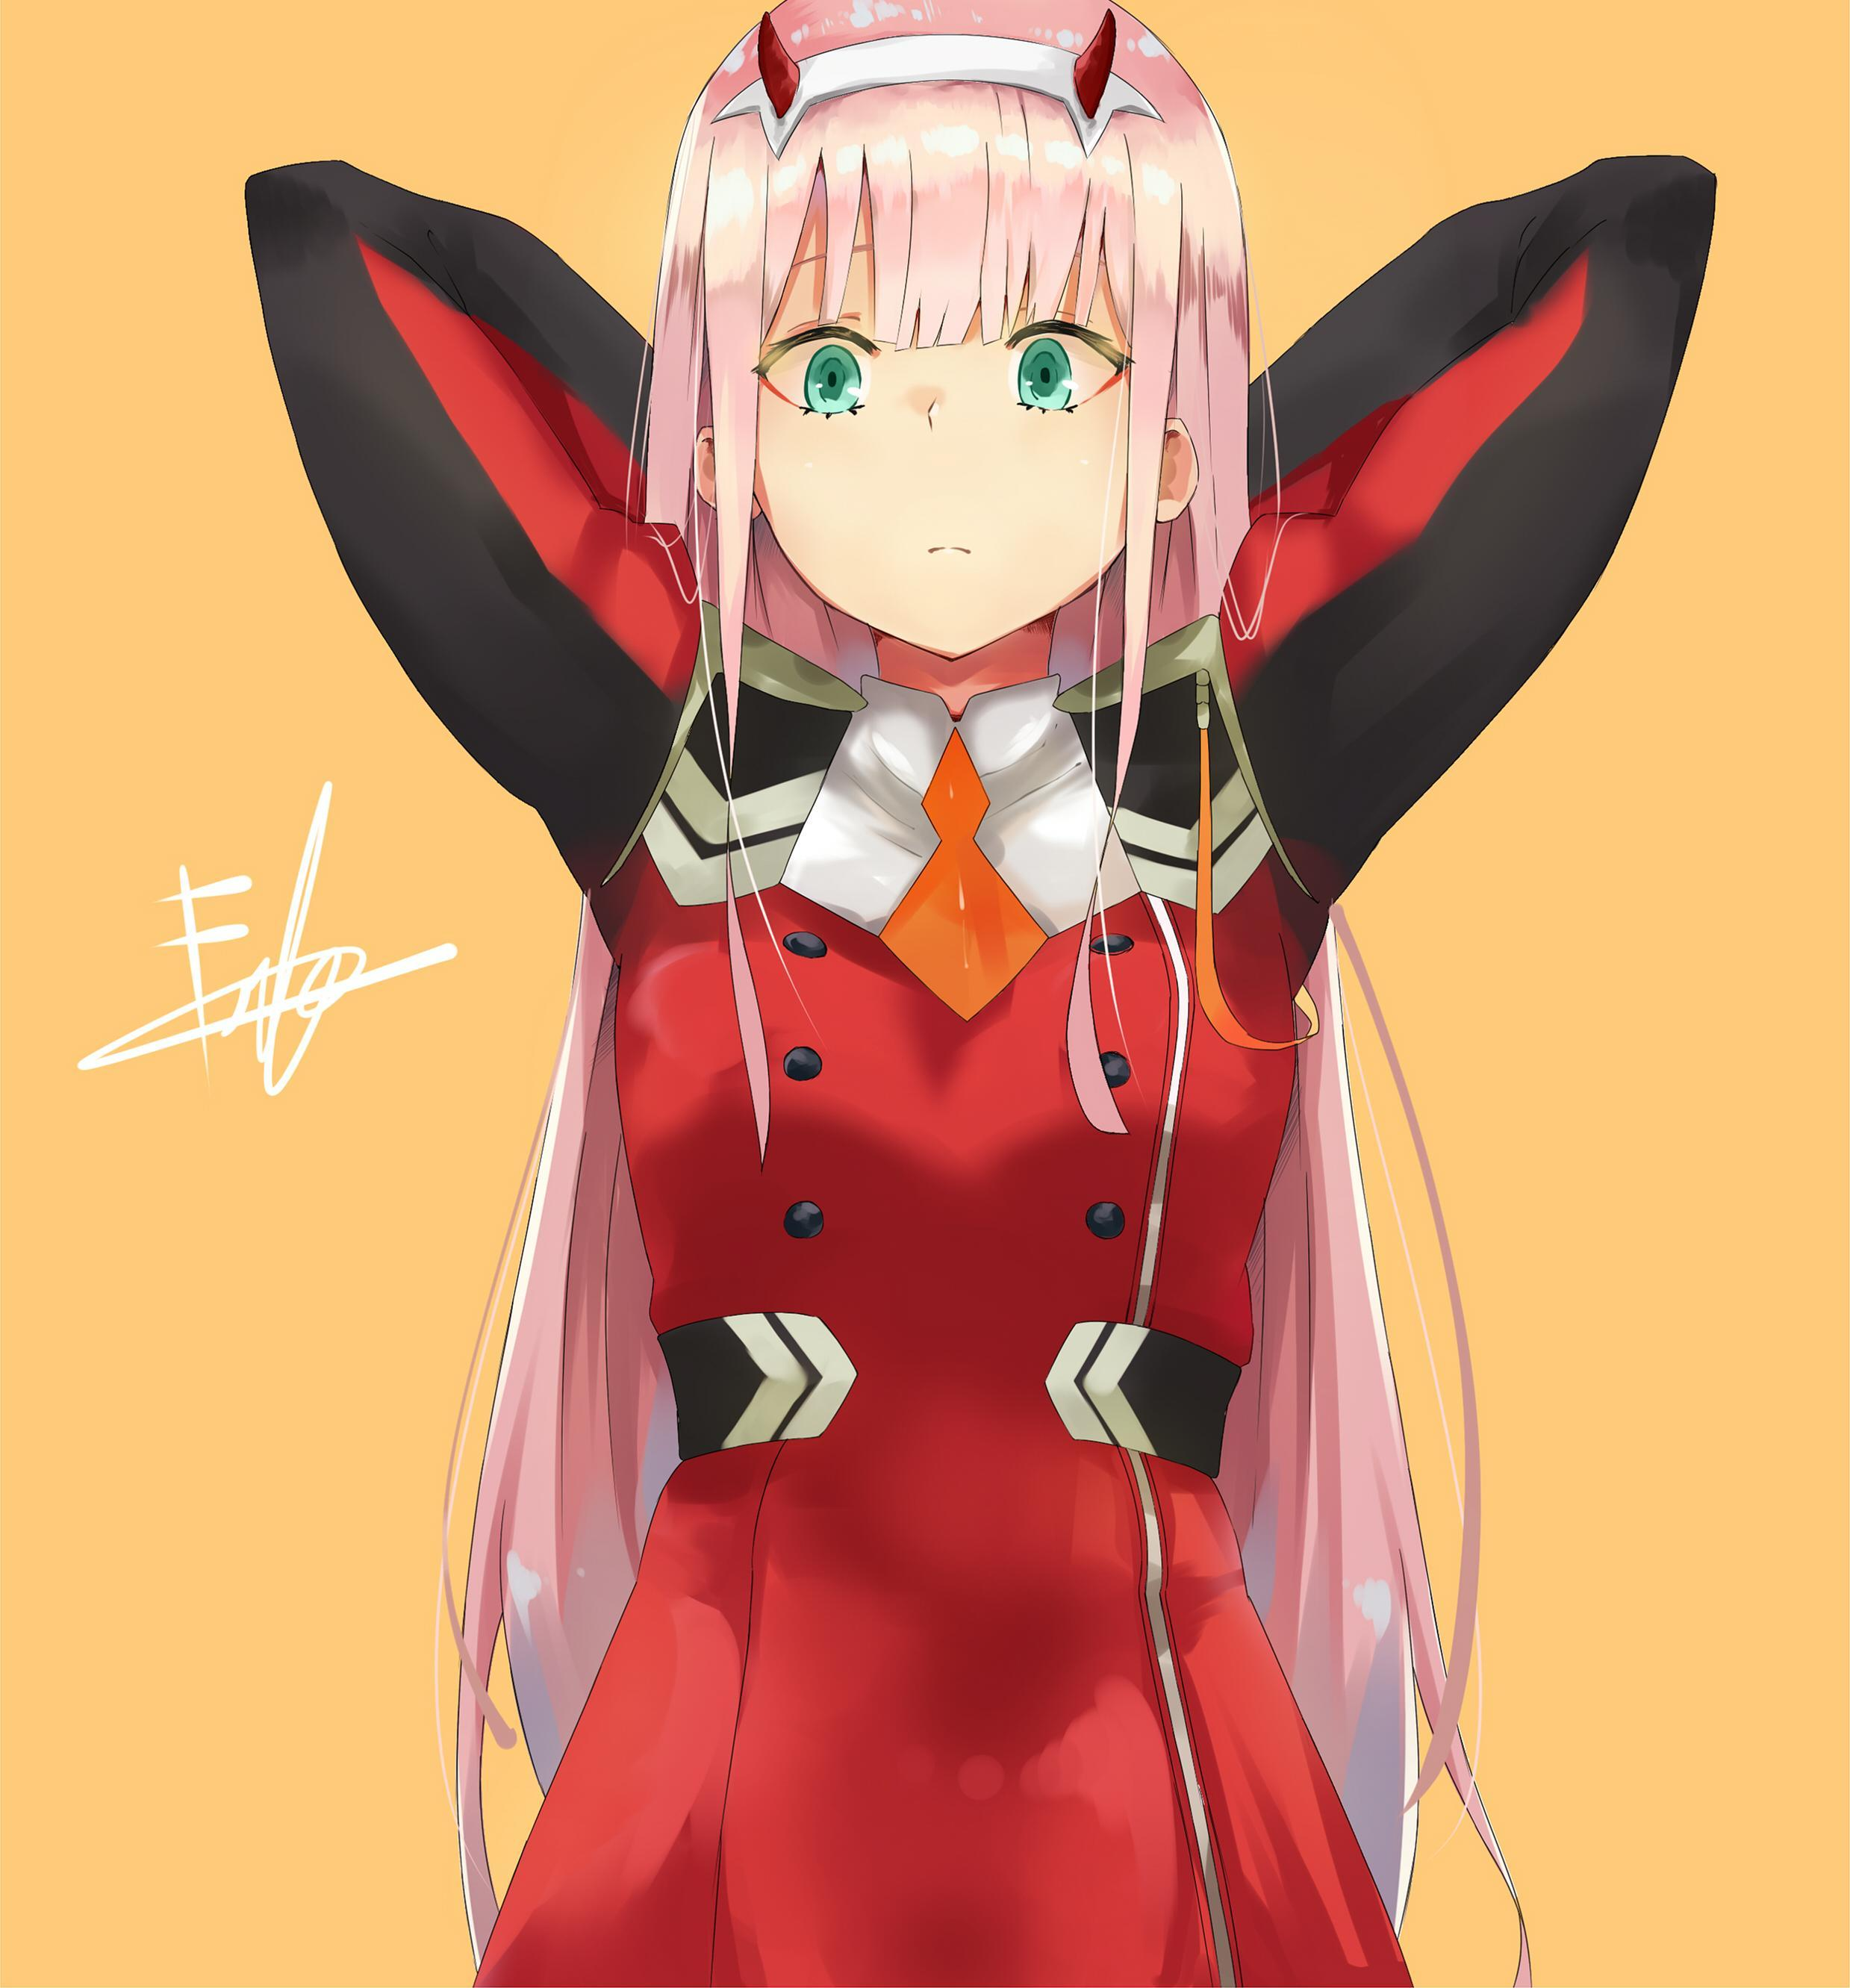 4000+ Wallpaper Android Hd Zero Two